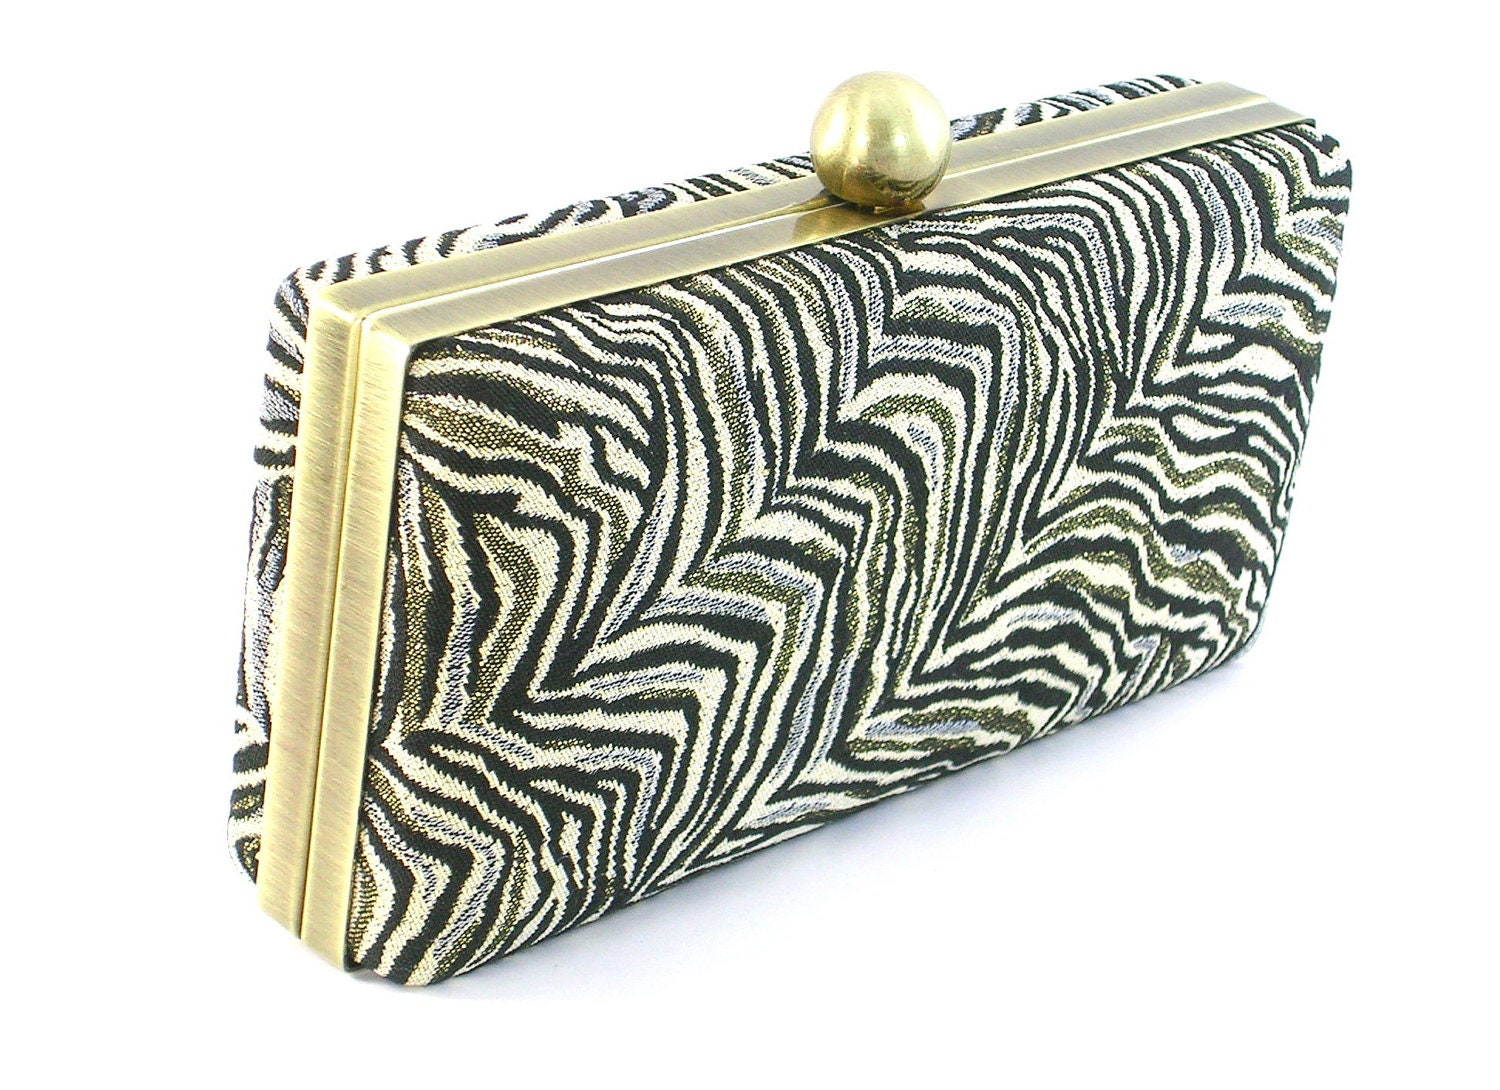 Shop a great selection of Clutches for Women at Nordstrom Rack. Find designer Clutches for Women up to 70% off and get free shipping on orders over $